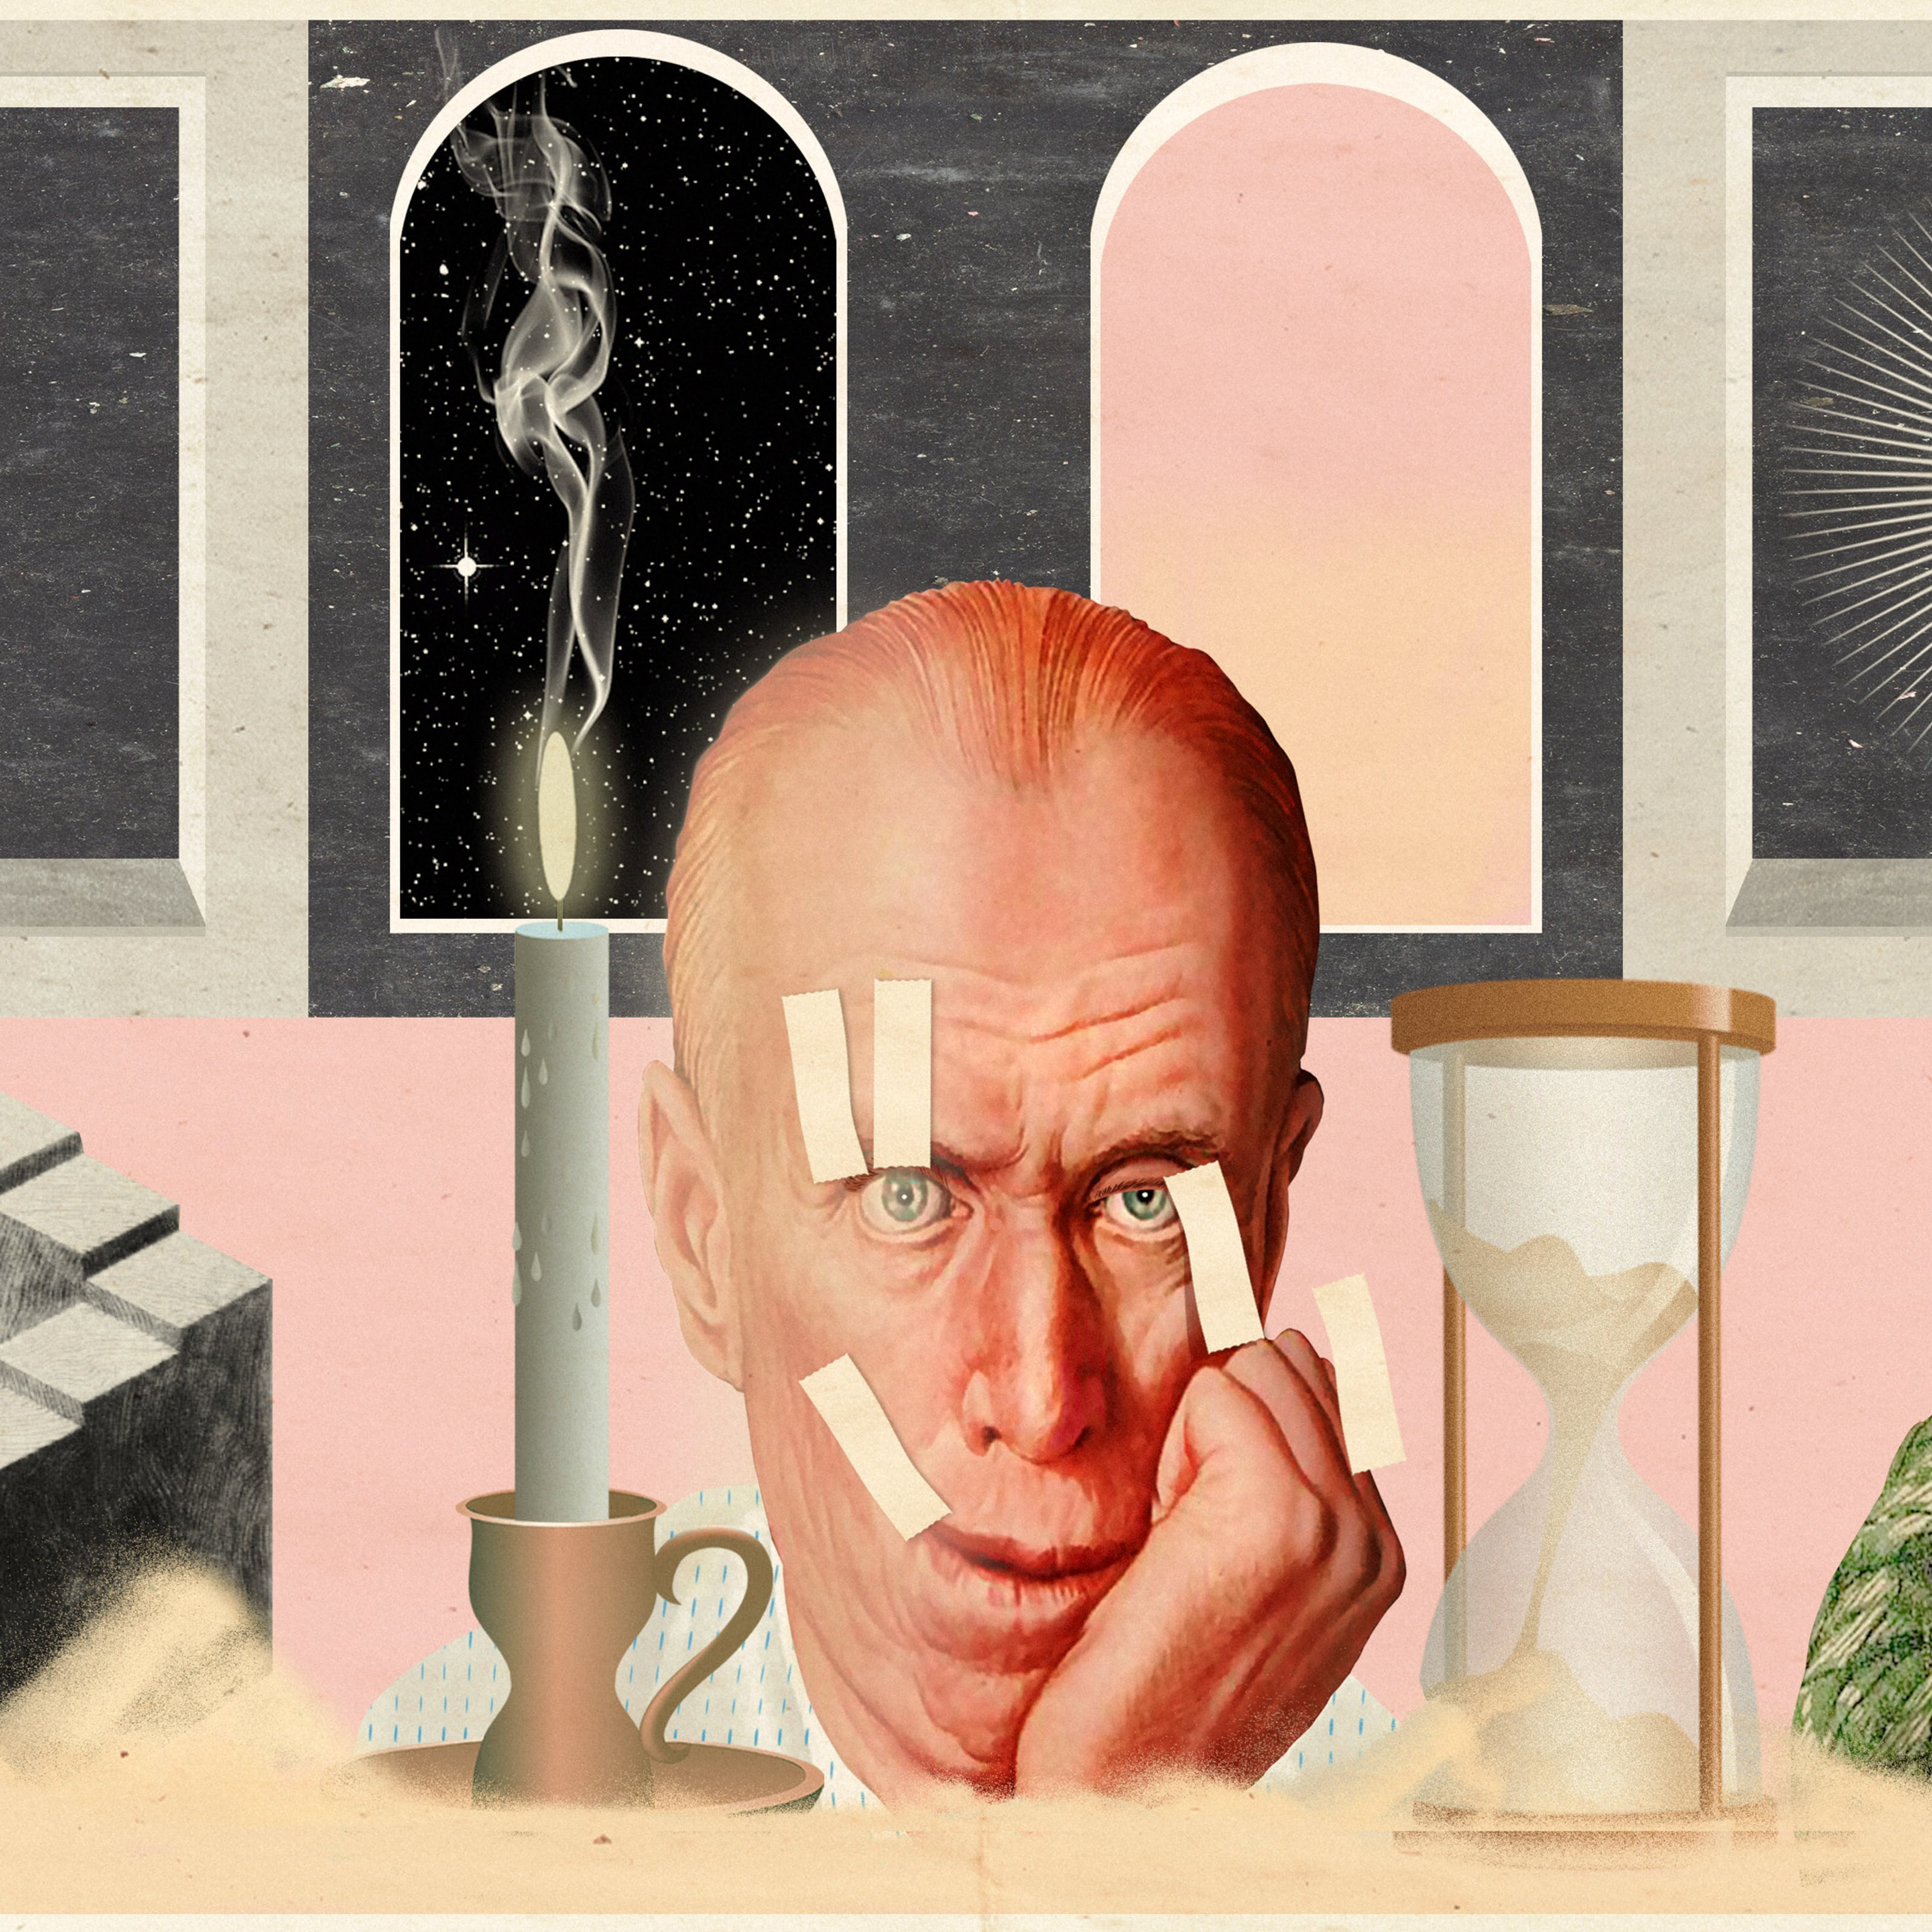 Mixed media digital artwork combining found imagery from vintage magazines and books with painted and textured elements. The overall hues are pastel yellows, pinks and greys with elements of harsh reds and oranges. At the centre of the artwork is an elderly man's face, his cheek resting on his hand. His thinning hair is swept back over his head and his eye stare blankly out in the distance. His right eyelid is being held open by two lengths of yellow tape and the right corner of his mouth is being held up into a forced smile by another length of tape. He looks exhausted. Behind his head are 2 doorways, one with a starry night sky and the other with a pink and yellow sunset sky. To the far left is a window with a diagram of the moon int he centre. To the far right is a window with a pictorial representation of the sun. To the left of the man's face is a large lit candle in a candlestick holder. To the right is a large hourglass which is cracked at the base, spilling sand out into a thick band across the bottom of the image. To the far right foreground is a diagram of a never ending staircase. To the far right foreground is a drawing of the back of the head and shoulders of a young man wearing a green checked jacket holding up an oval mirror in front of his face. His face in the reflection is of an old version of himself.